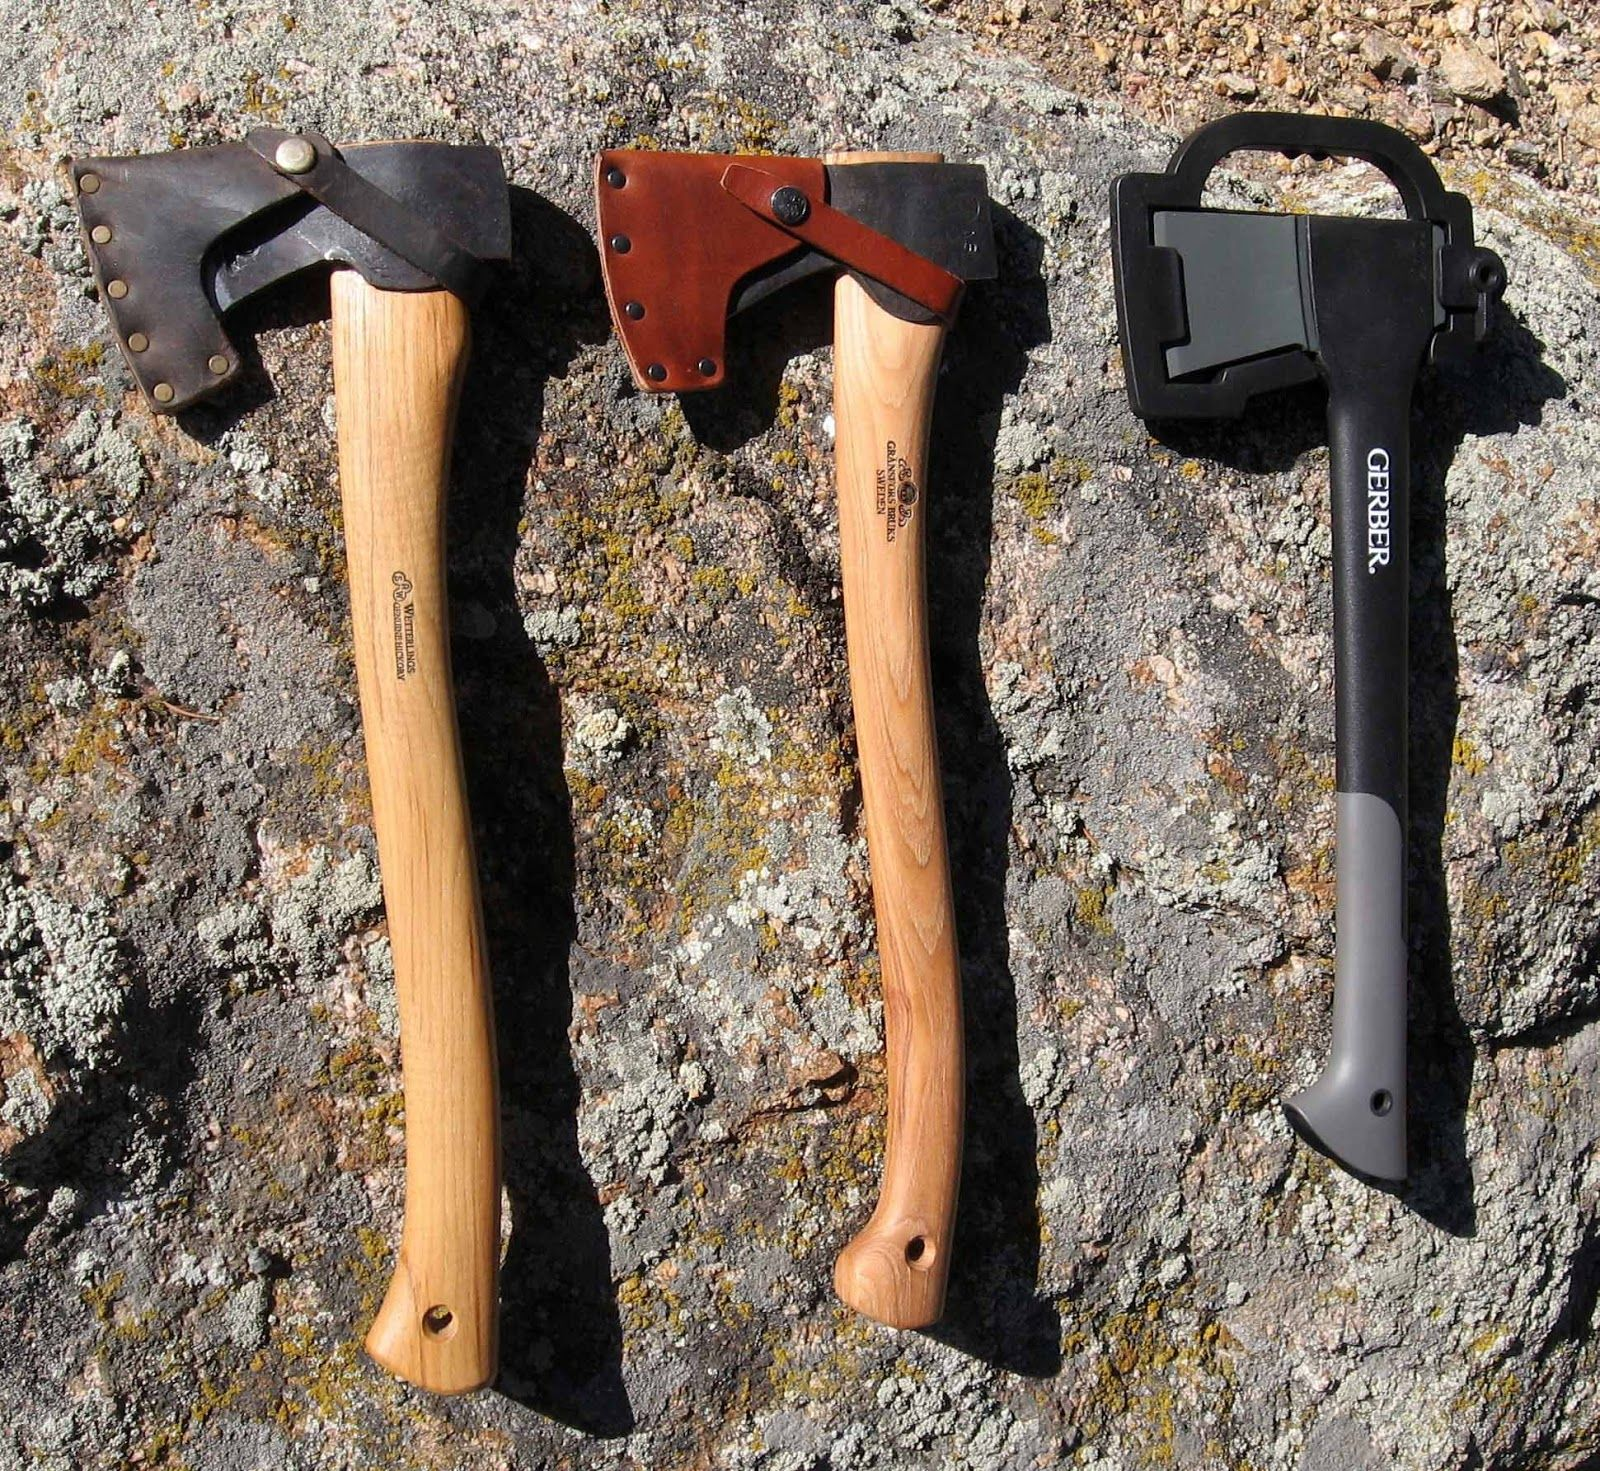 Gransfors Bruks Small Forest Axe Review Wetterlings Large Hunting Axe Review Gerber Camp Axe Ii Review Bushcraft Axe Bushcraft Axe